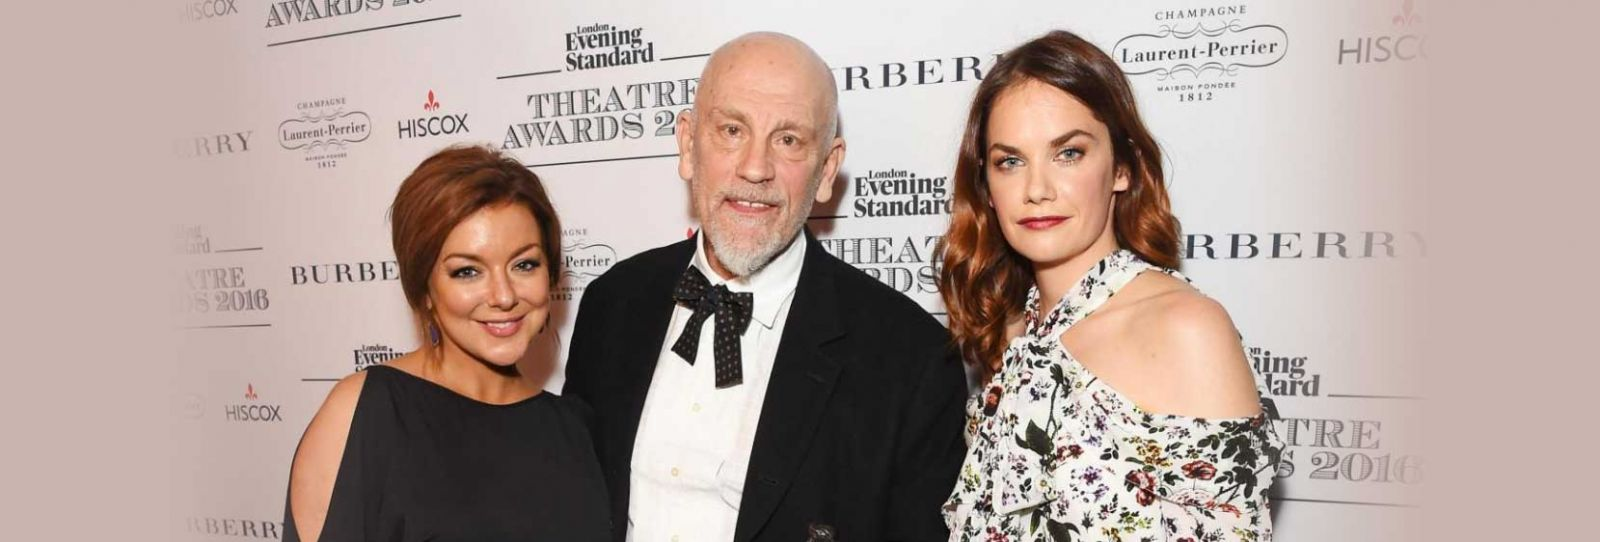 John Malkovich scoops best director award for Good Canary